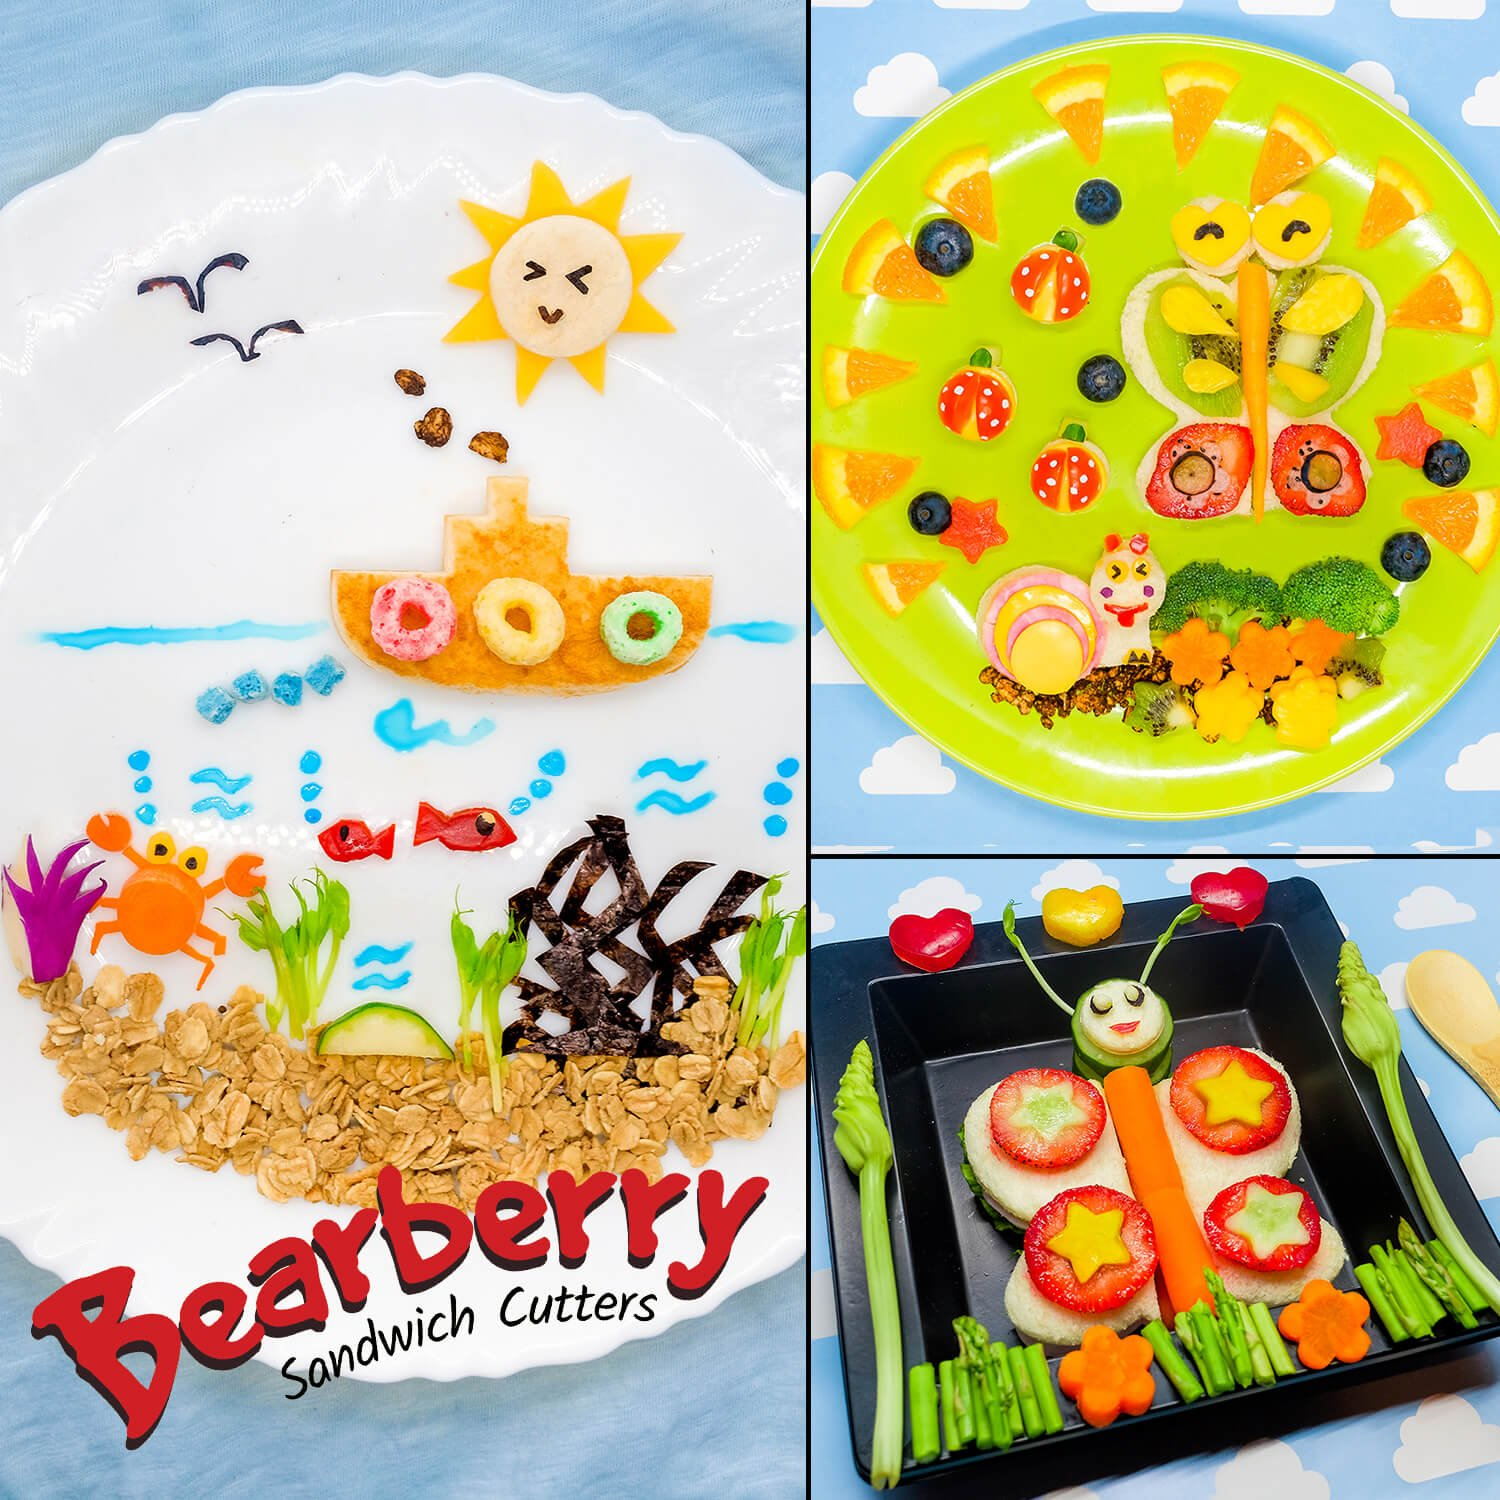 Bearberry Sandwich Cutters, Bread Crust & Cookie Stamp Set - Fun Heart, Dinosaur, Food Shapes for Kids Bento Lunch Box, Boys and Girls - GET FREE Mini Stainless Steel Vegetable & Fruit Press! by Bearberry (Image #8)